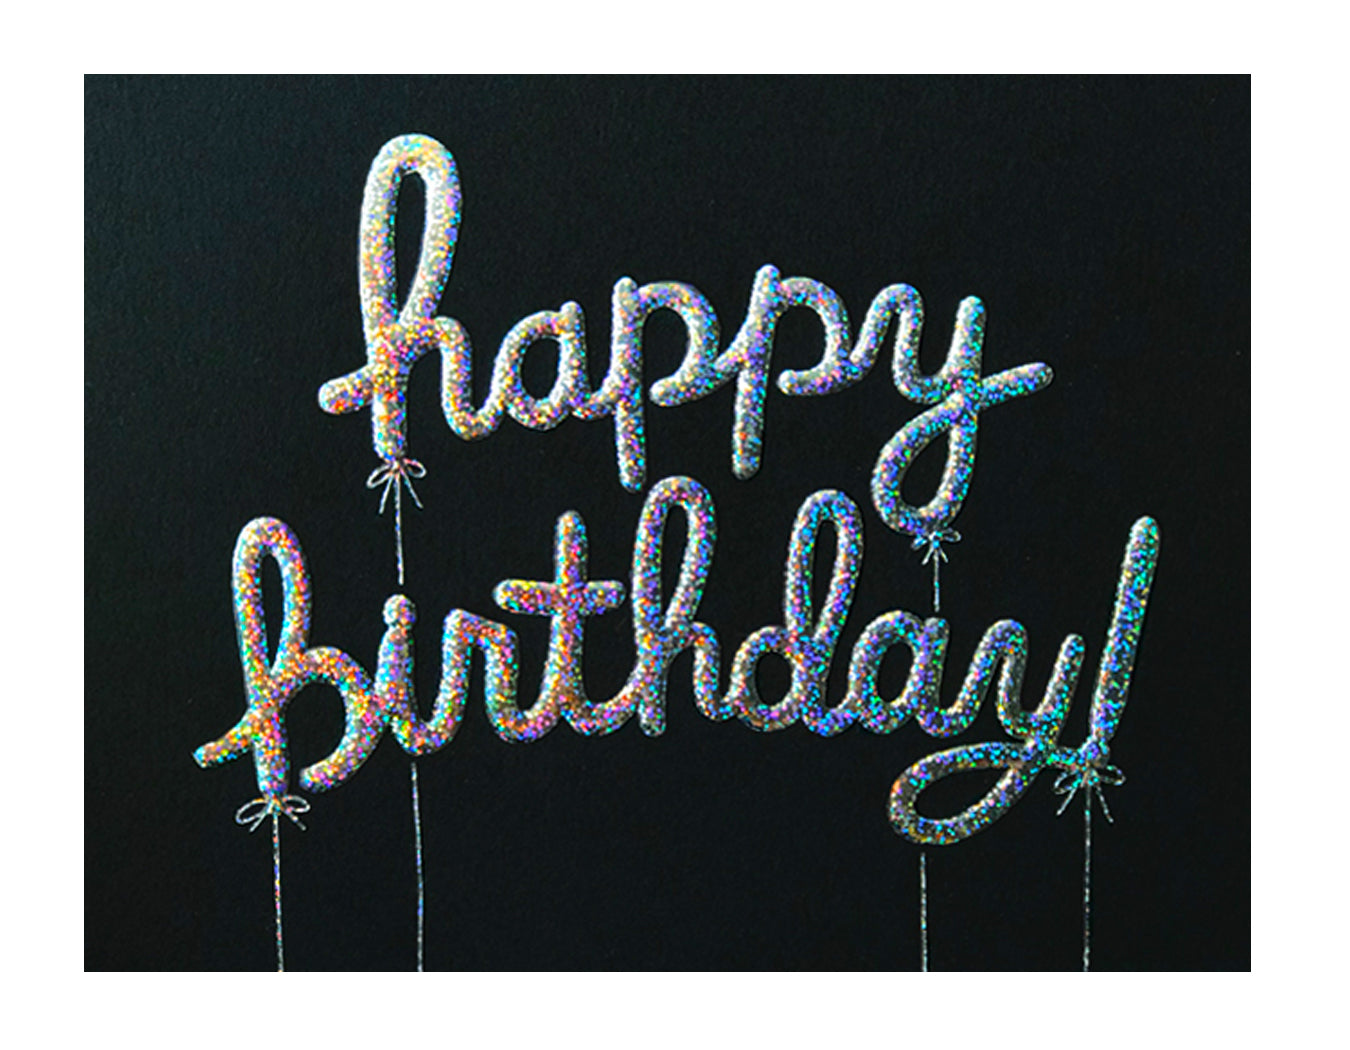 holographic silver foil spells house happy birthday in balloons on front of card